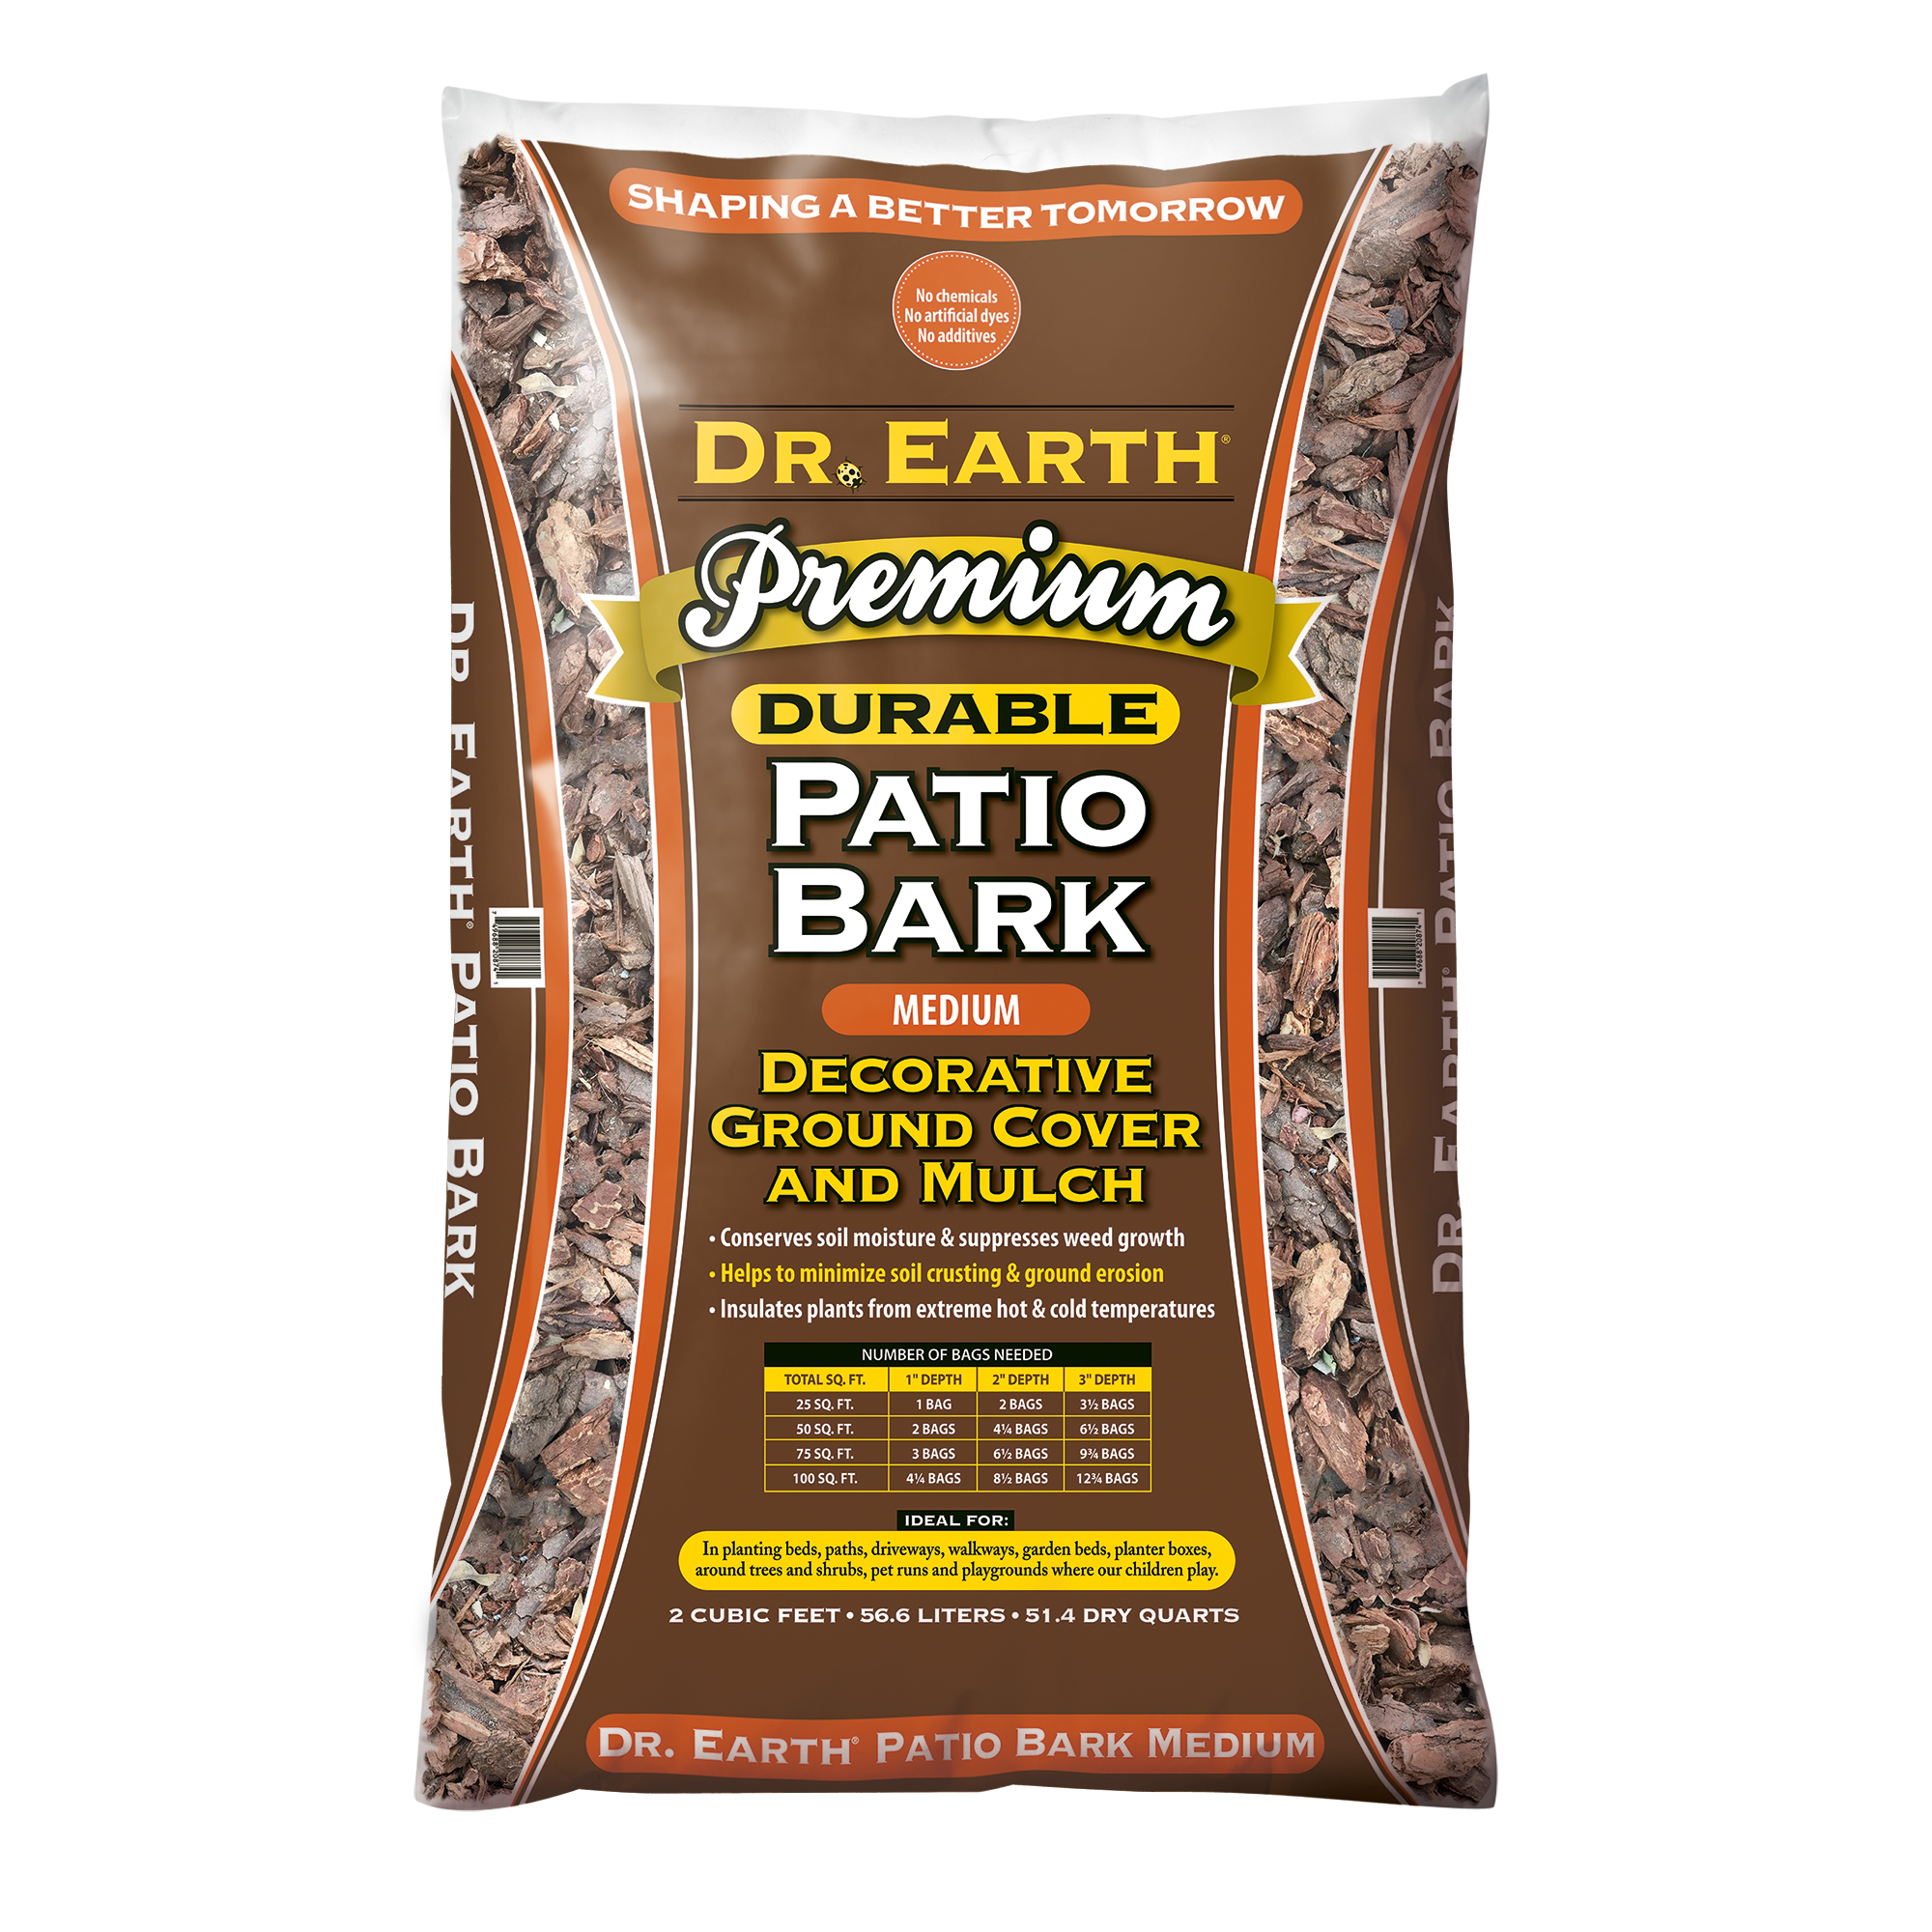 DR. EARTH PREMIUM MEDIUM PATIO BARK  DECORATIVE GROUND COVER AND MULCH